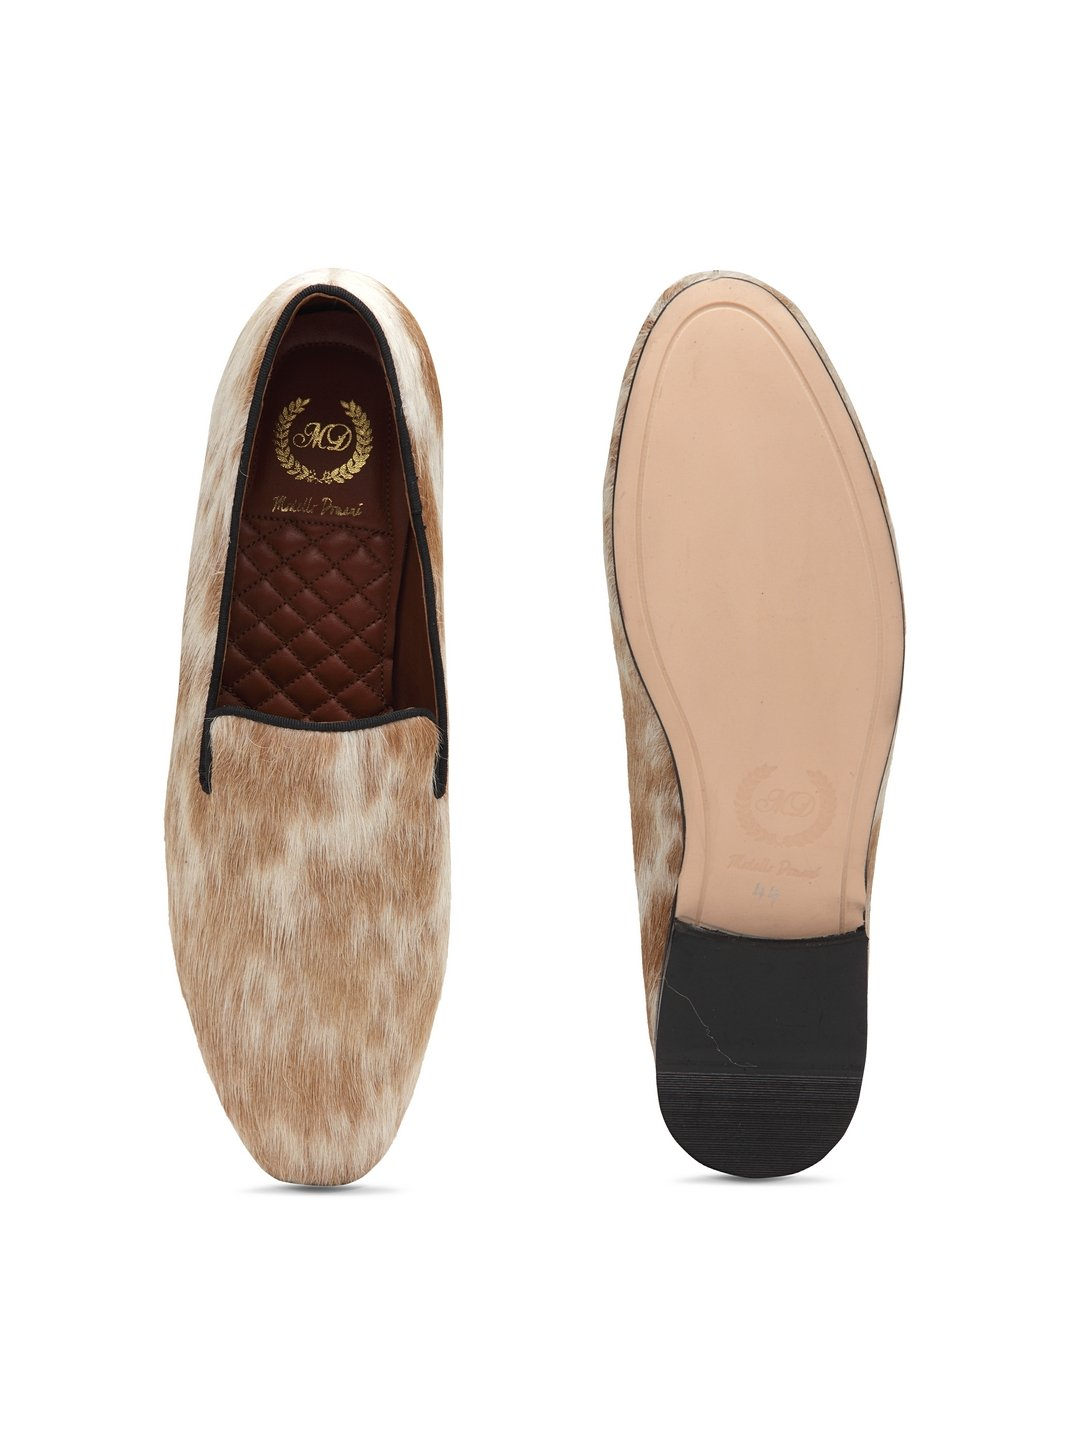 Horse Hair Slipons (Limited Edition)